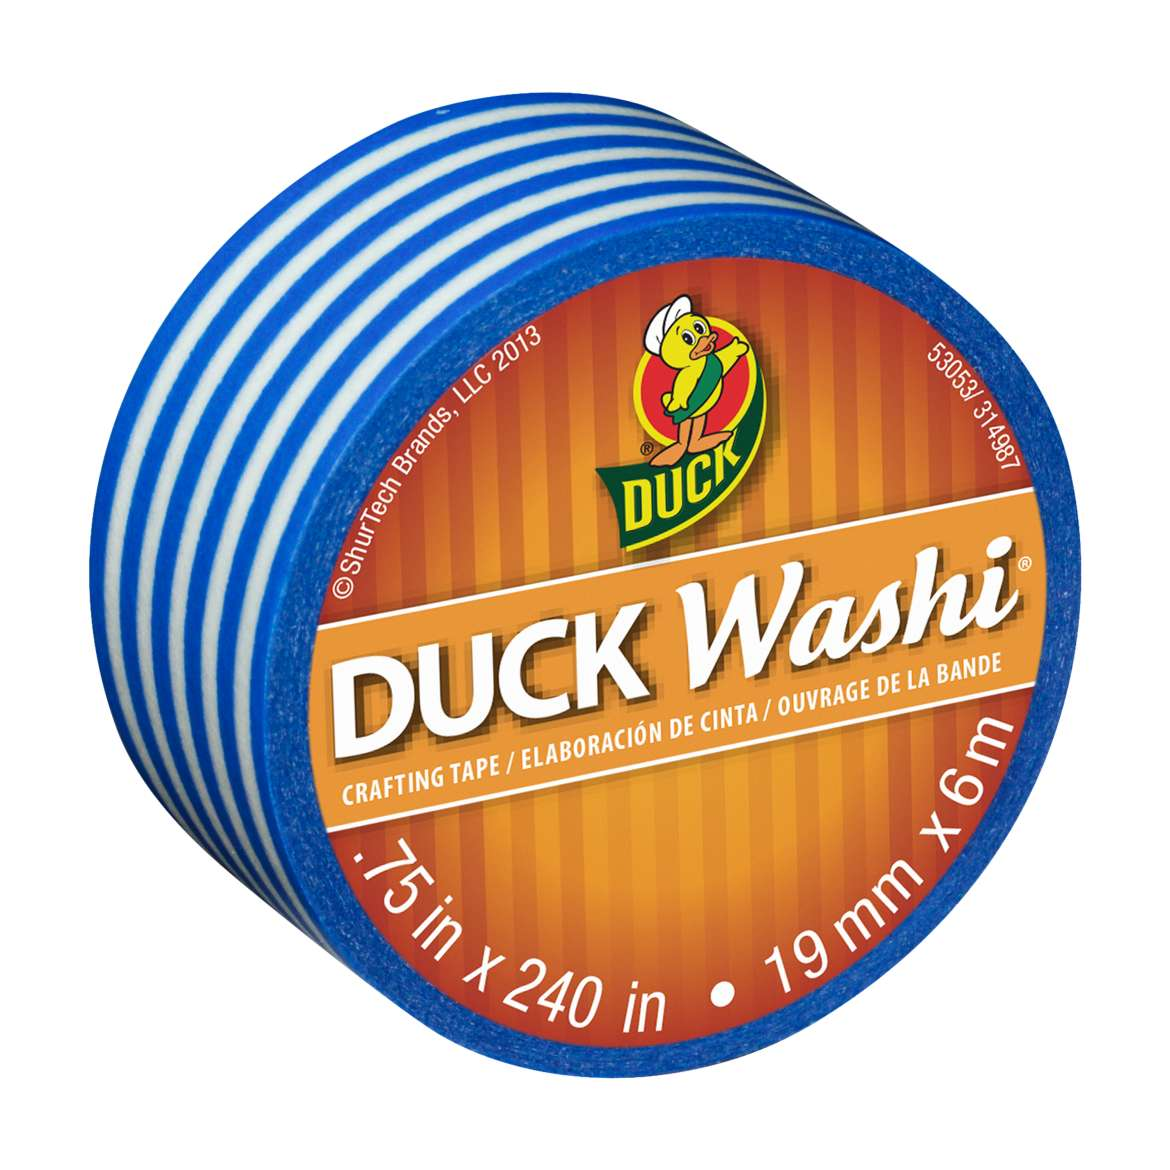 Duck Washi® Crafting Tape - Blue Stripe, .75 in. x 240 in. Image